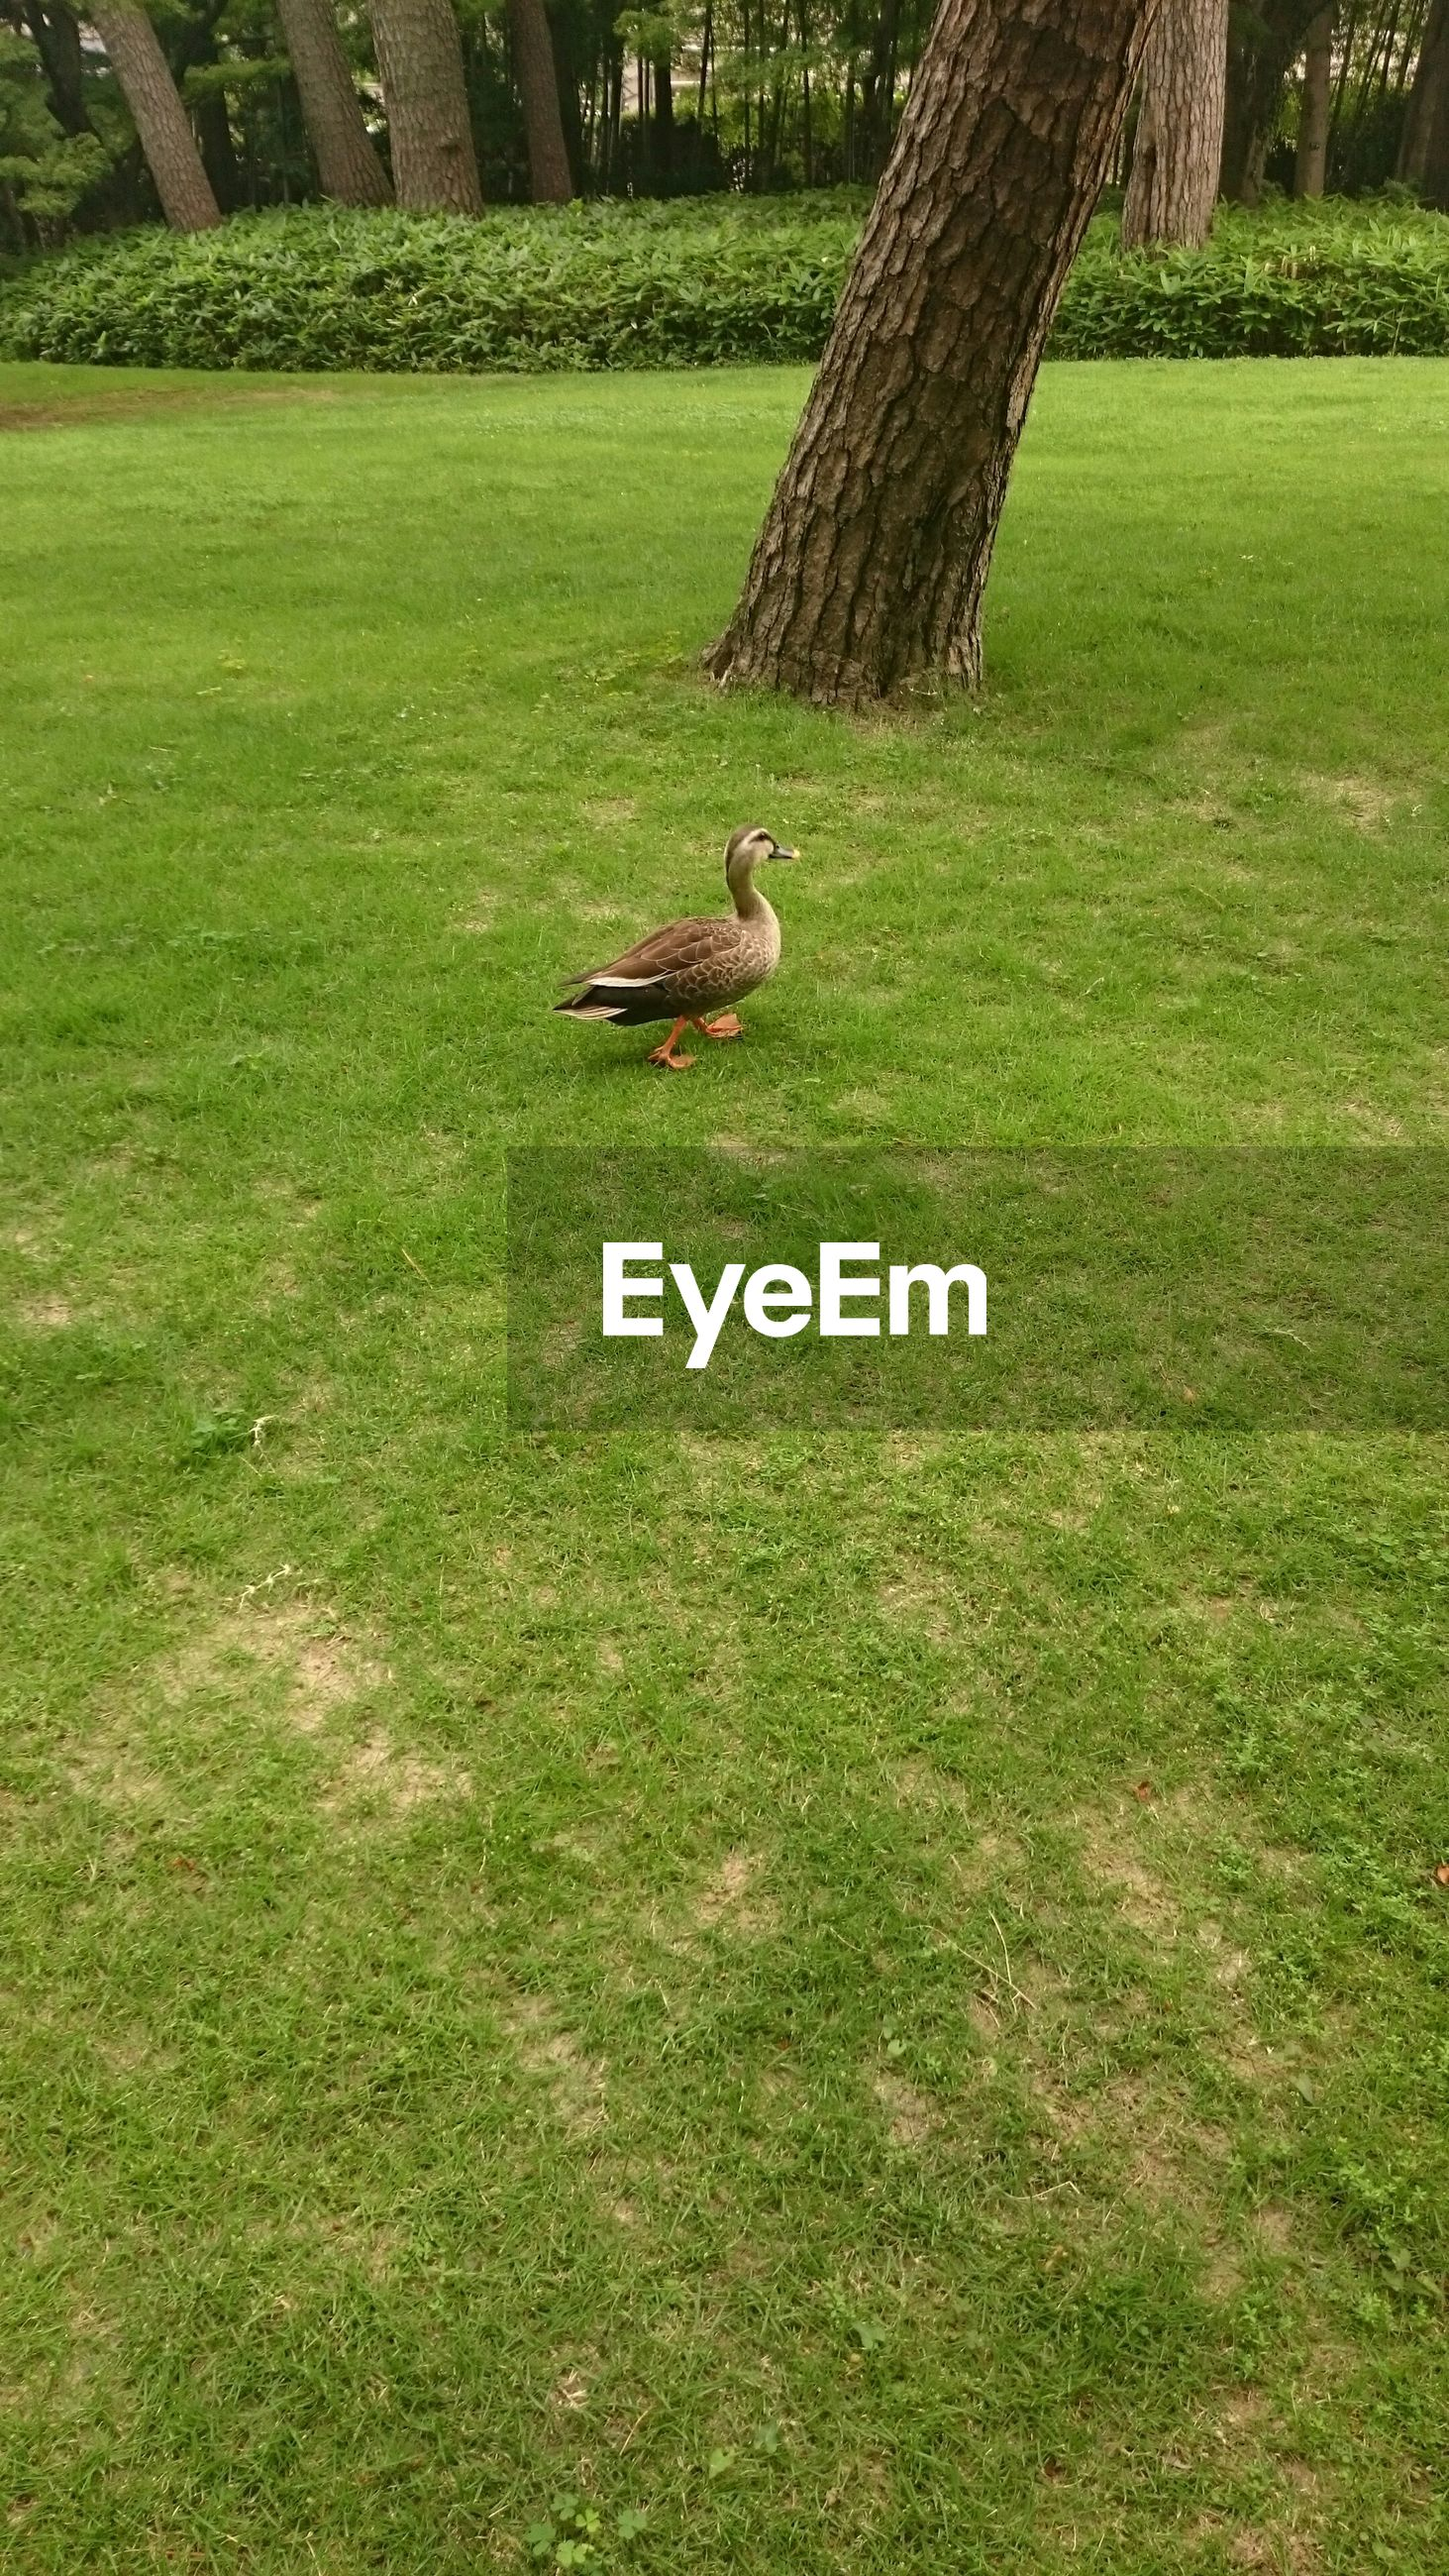 grass, animal themes, one animal, grassy, green color, field, wildlife, animals in the wild, bird, lawn, park - man made space, dog, grassland, full length, sunlight, nature, high angle view, outdoors, domestic animals, day